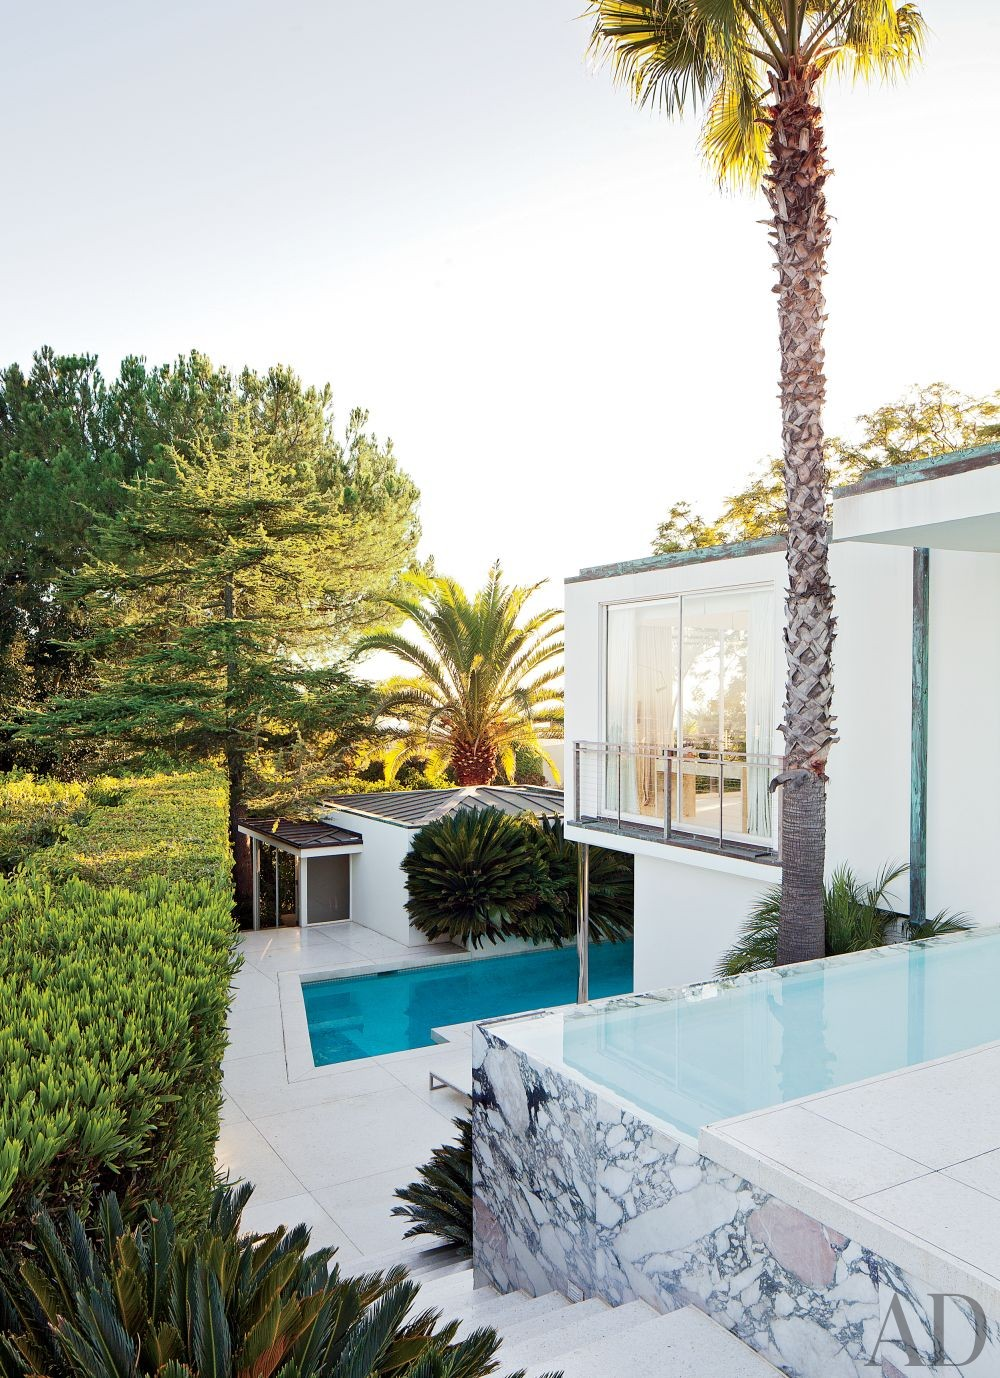 Architectural Digest Pool Designs: Modern Pool By Daniel Romualdez By Architectural Digest